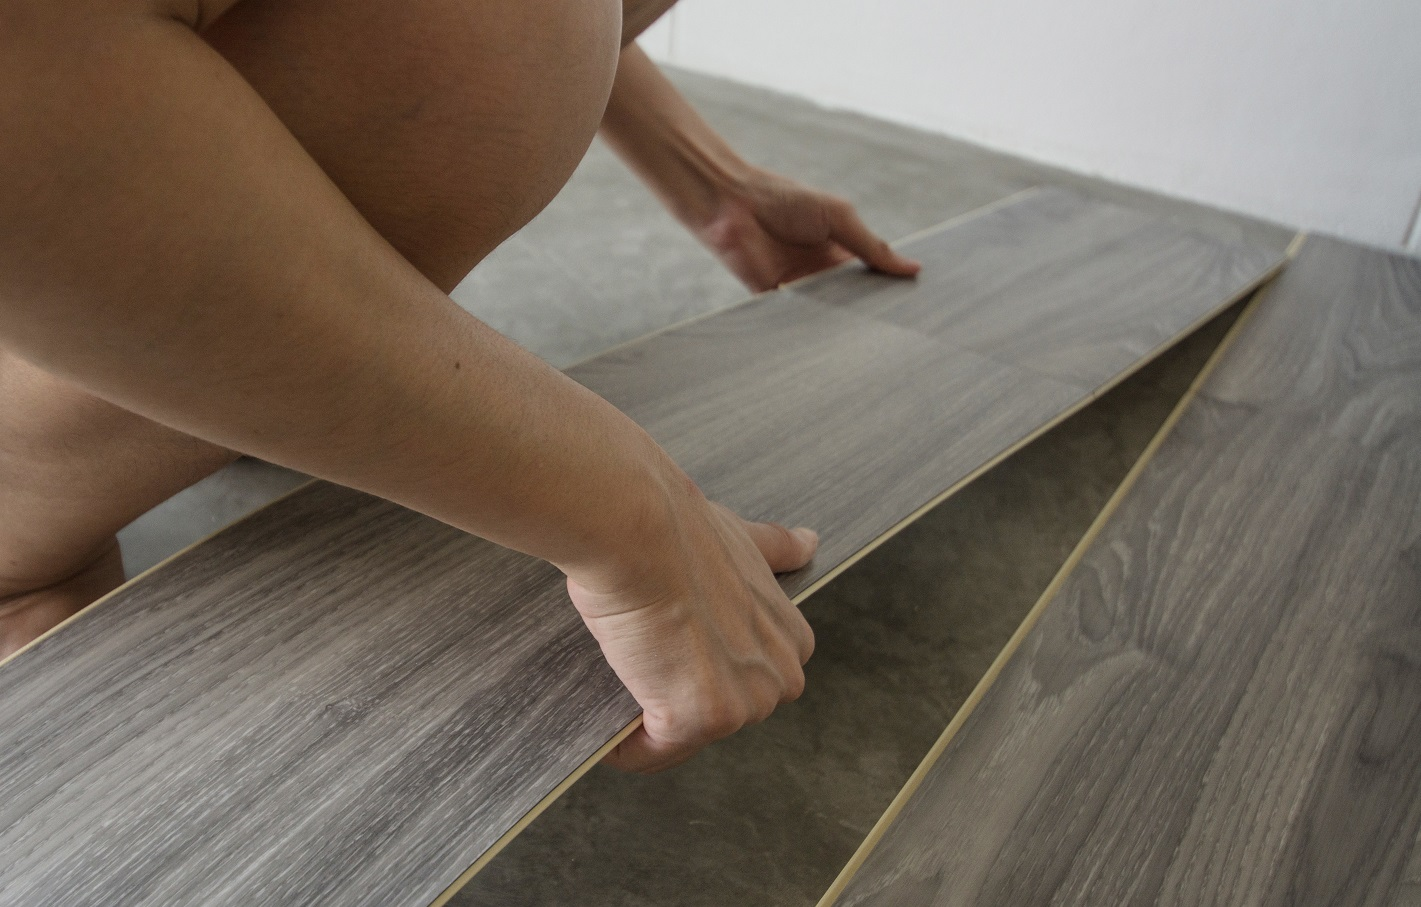 WPC floors are becoming an increasingly popular option for replacing various wood materials